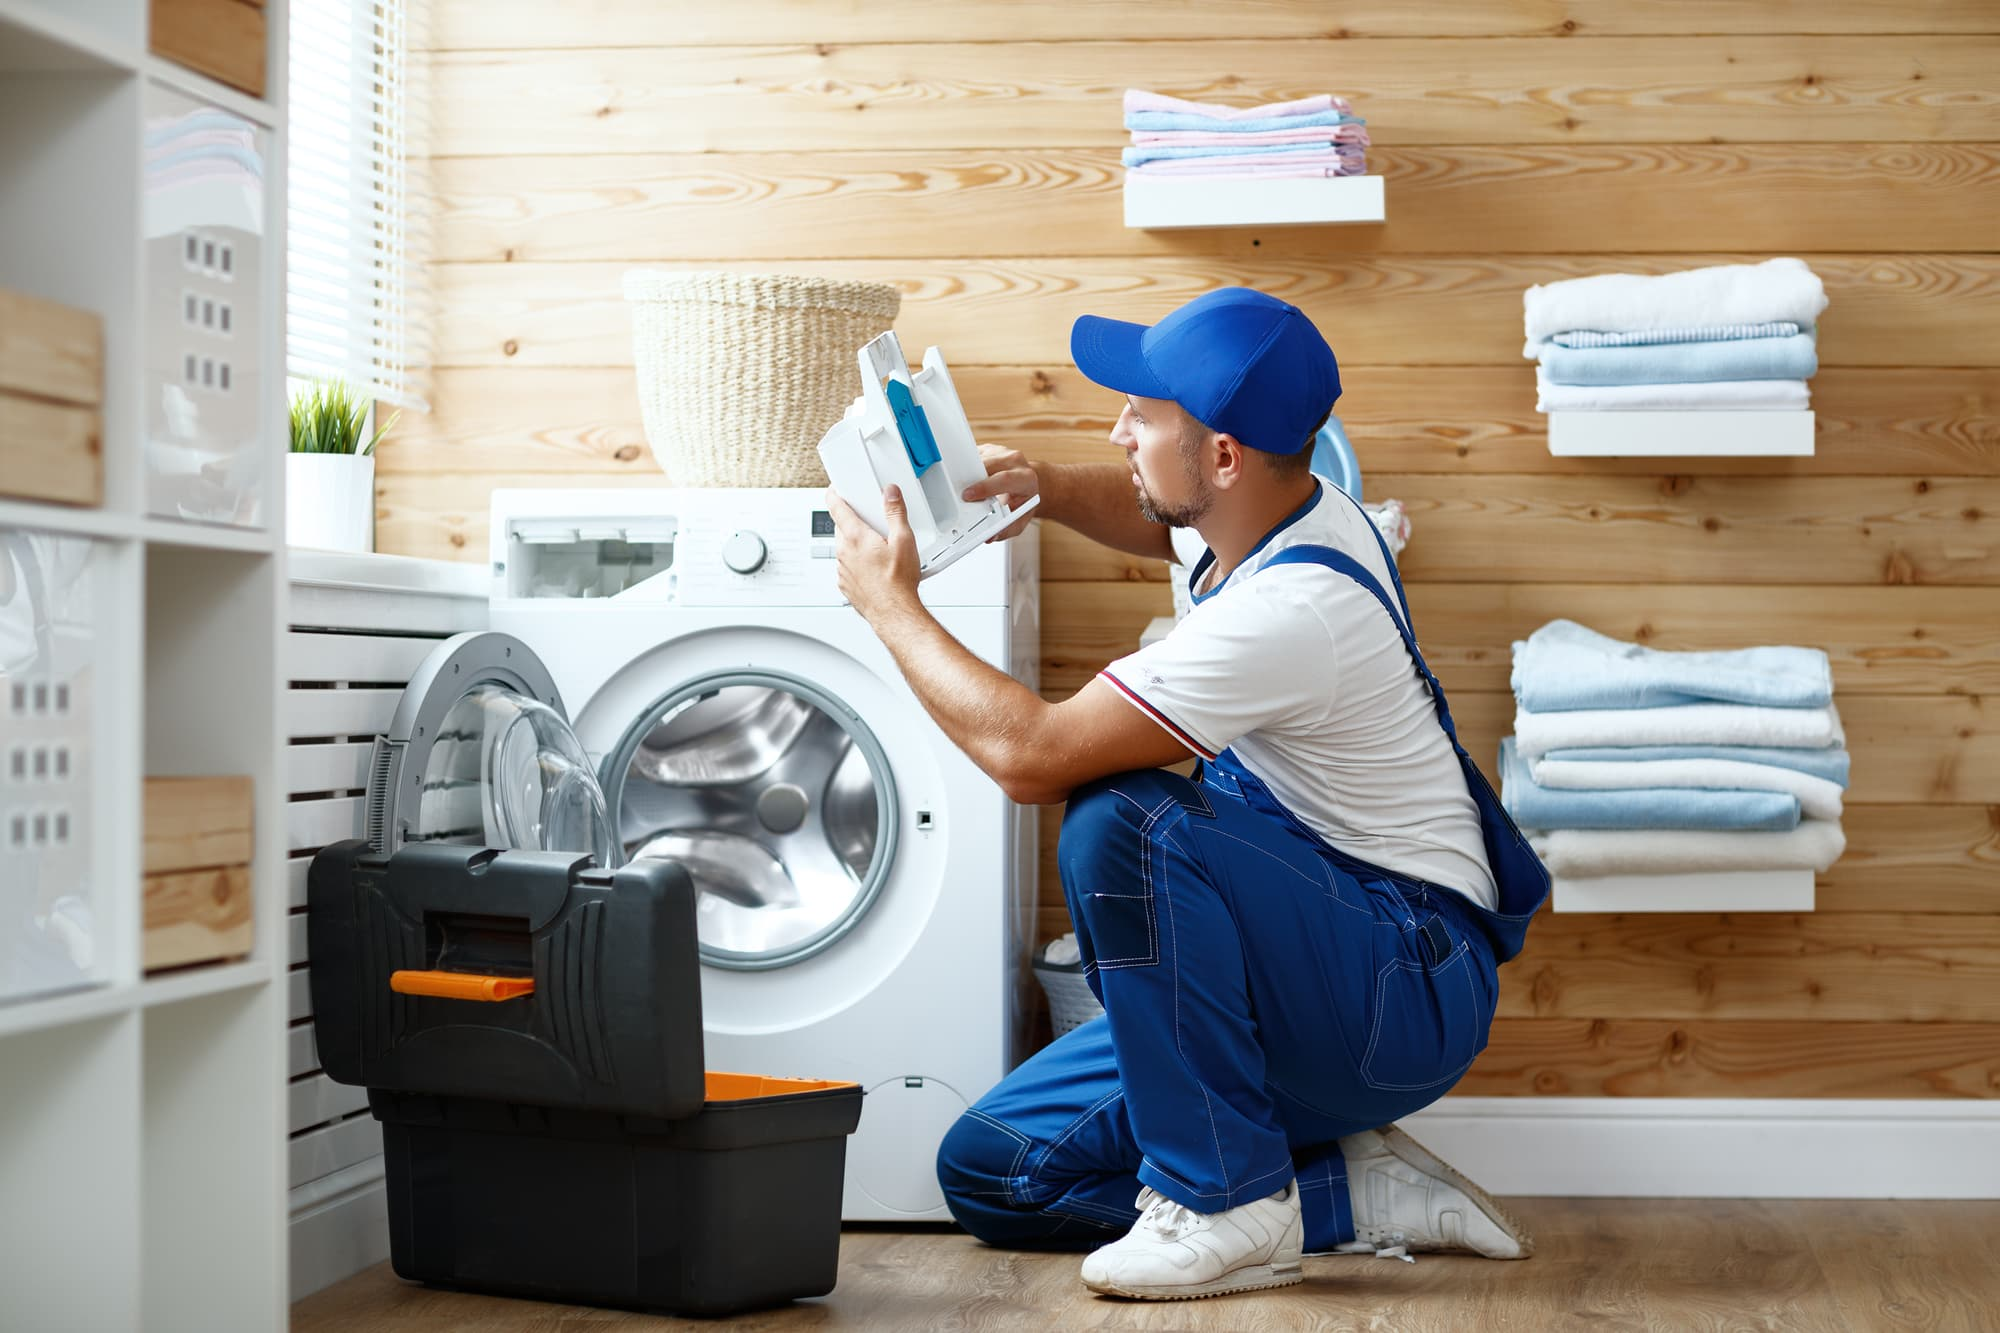 washing machine and a repair man in laundry area